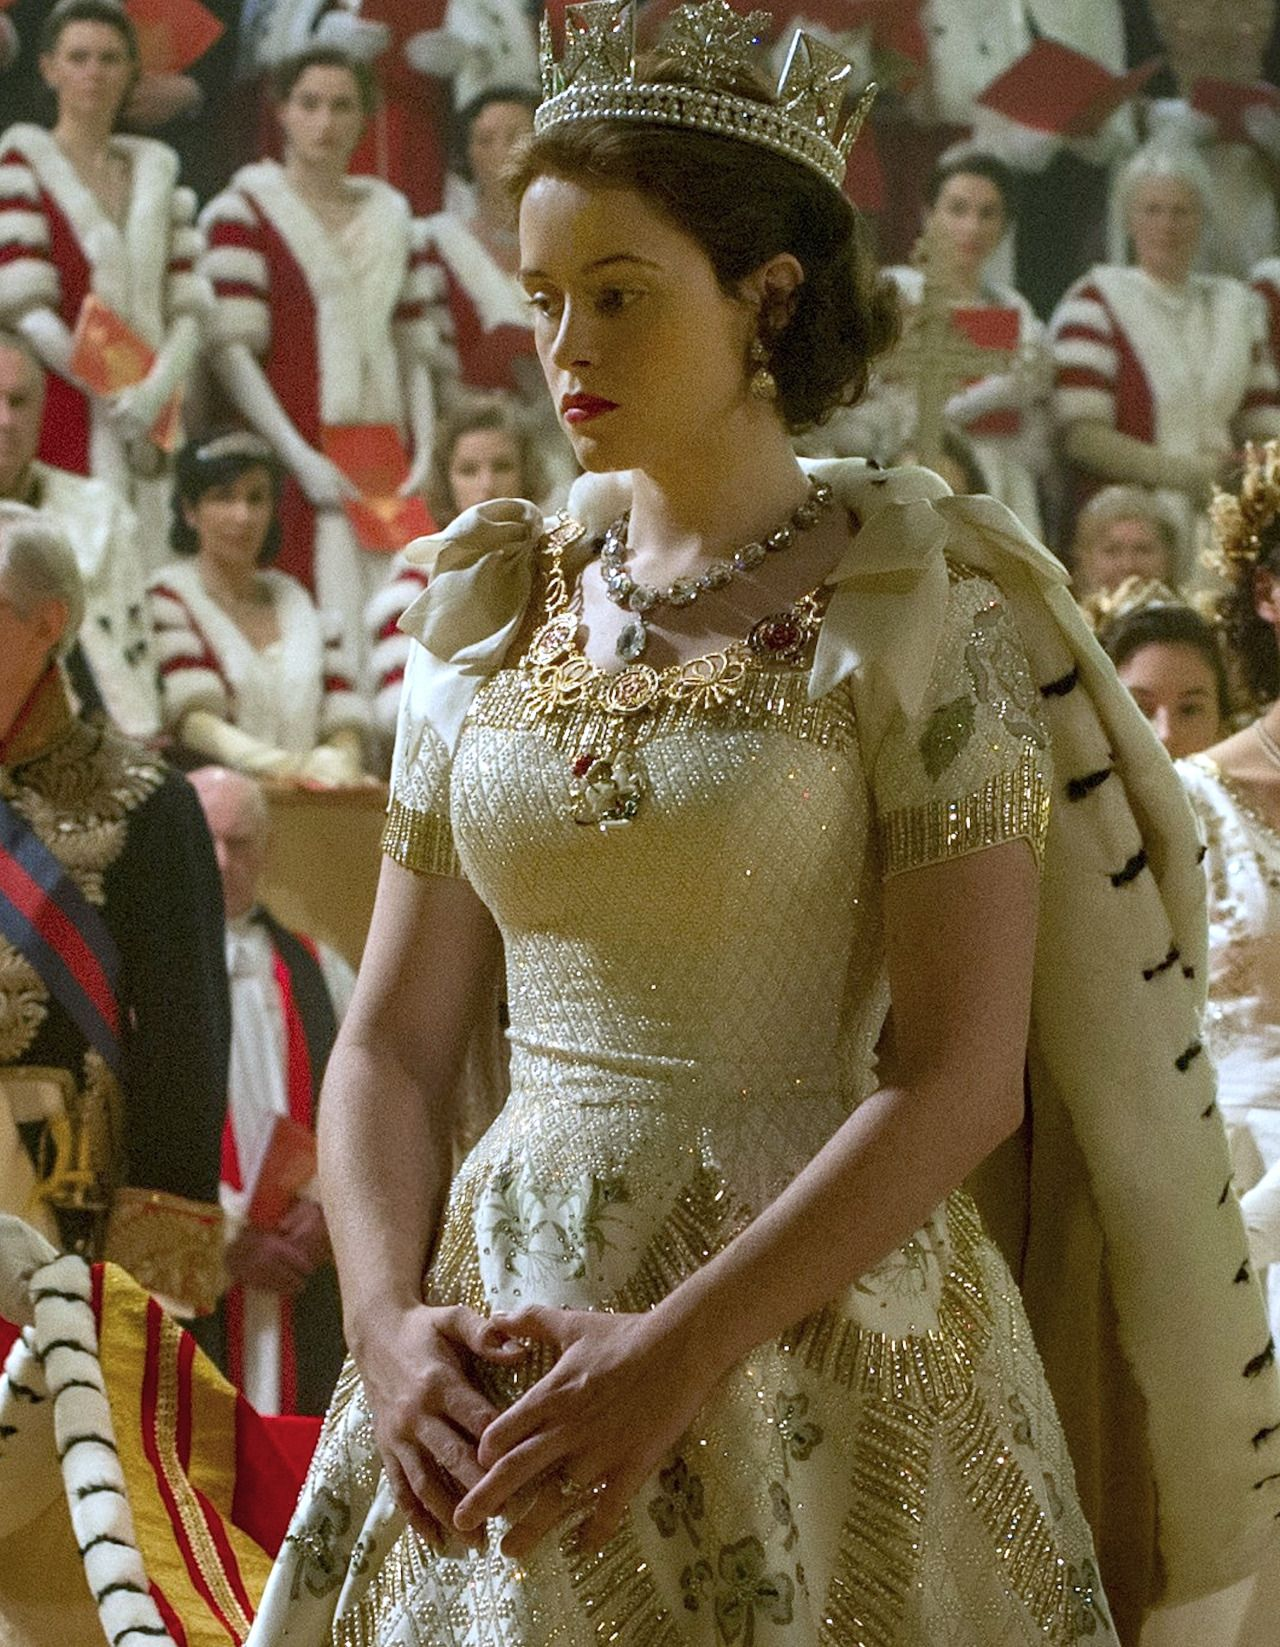 Claire Foy as Queen Elizabeth II in The Crown 2016 The